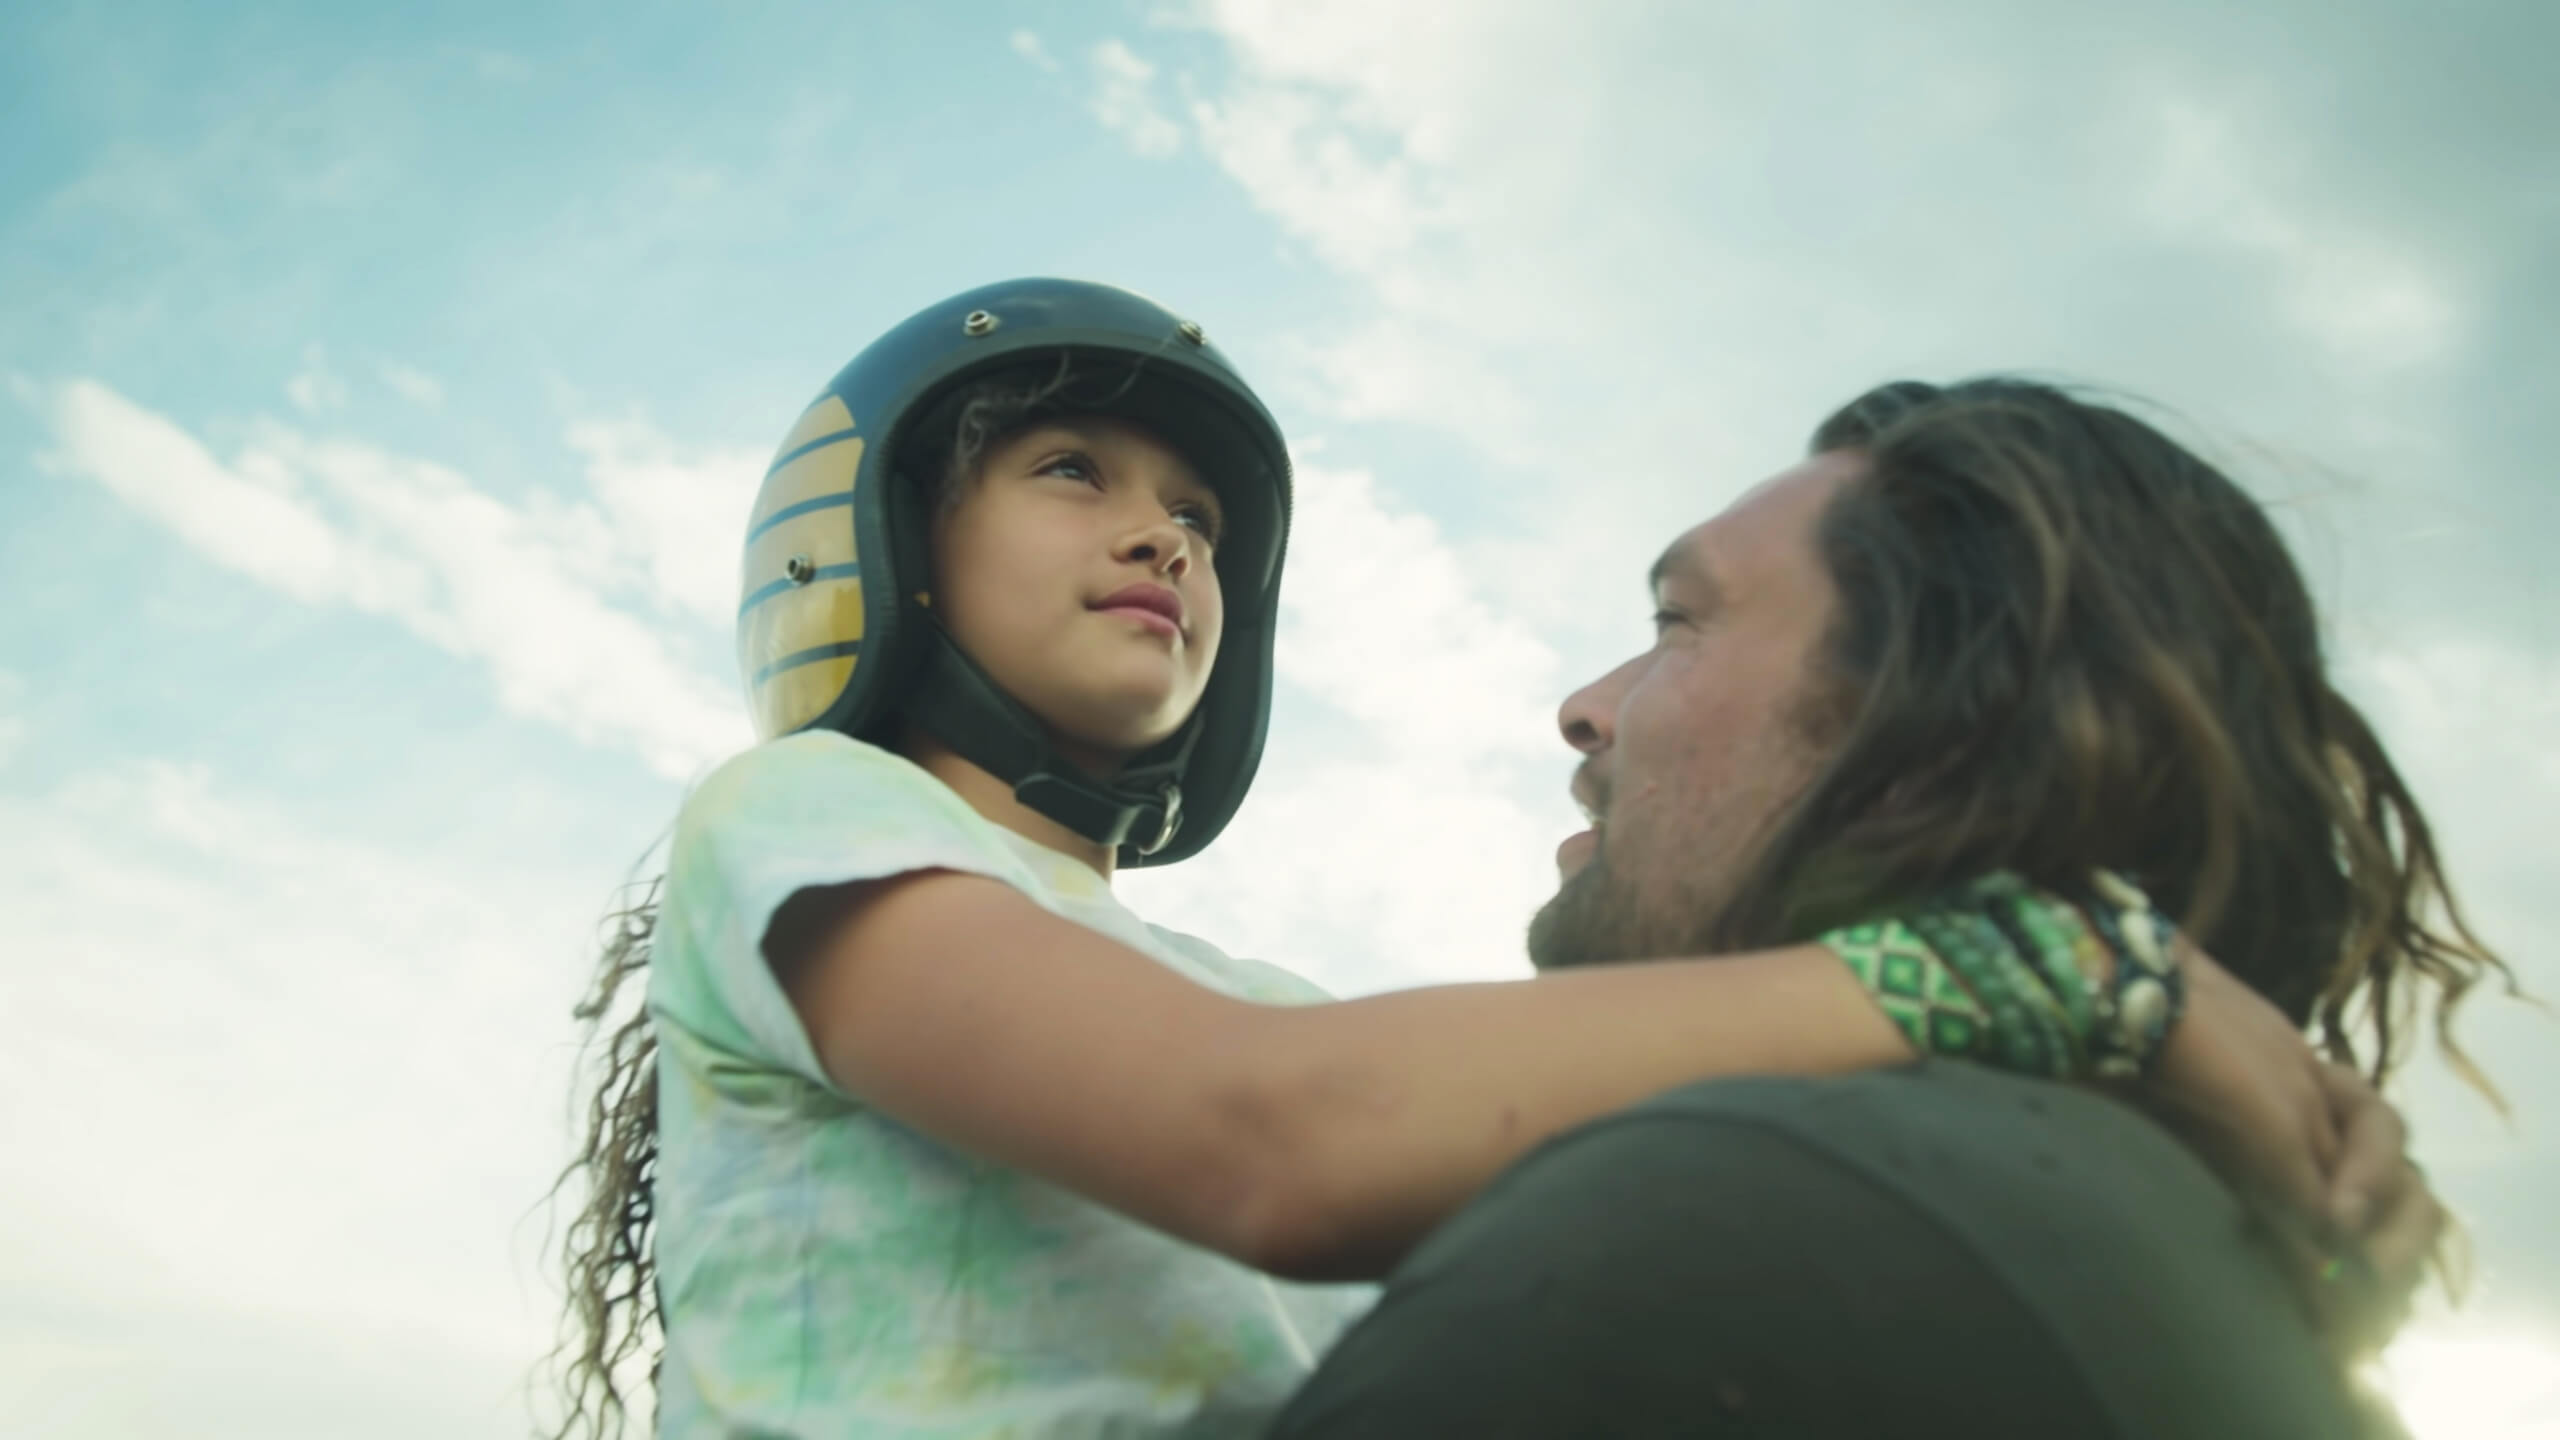 Creative agency TMA took Harley-Davidson's iconic brand and paired it with Jason Momoa's personal story with motorcycles to re-introduce the brand to a new generation of riders.